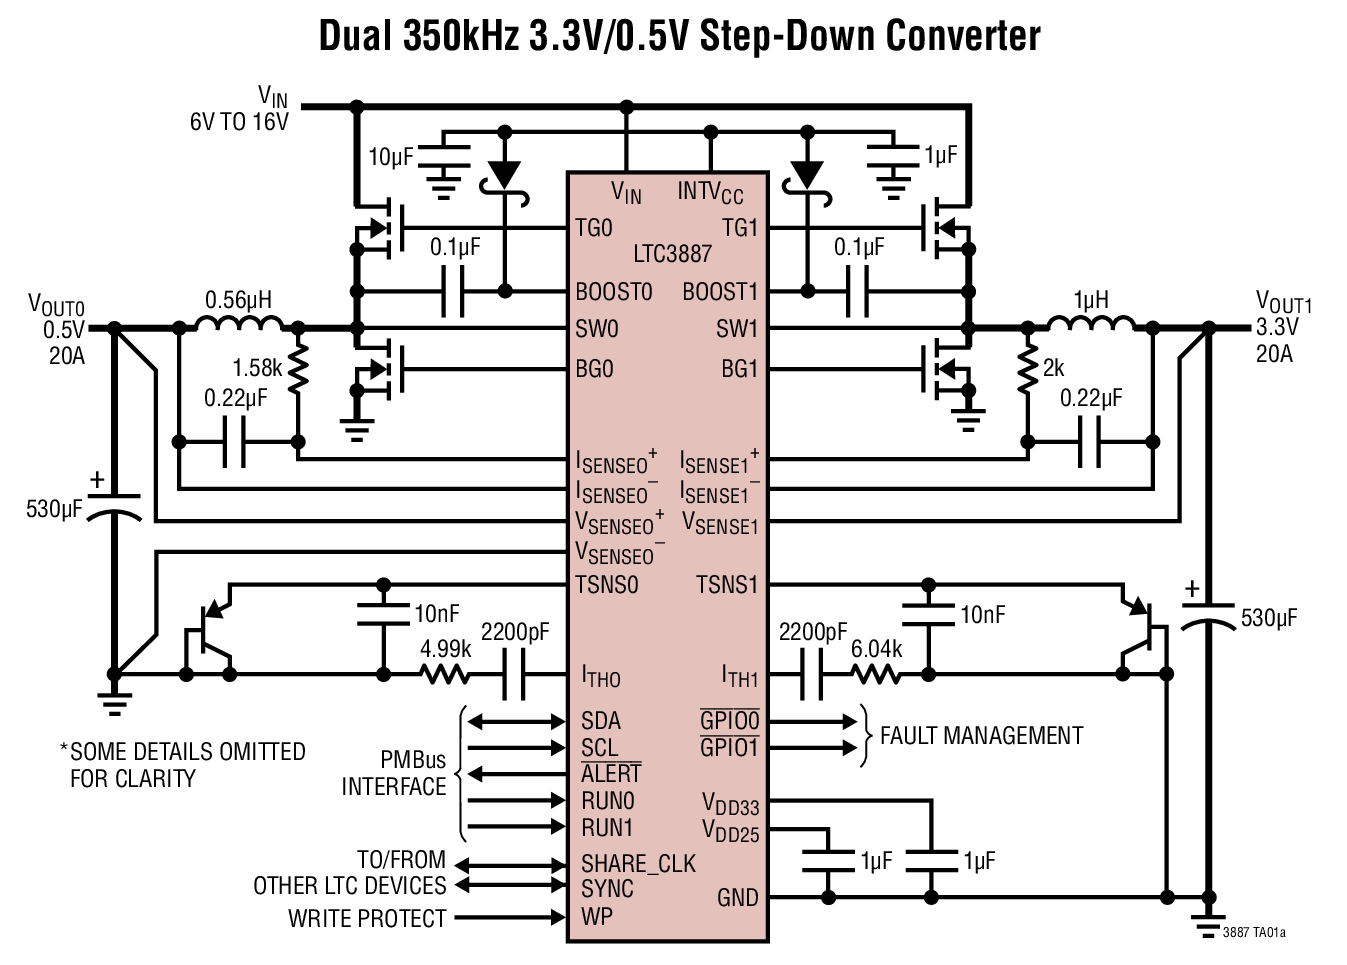 Buck converter starts up in just 70 ms